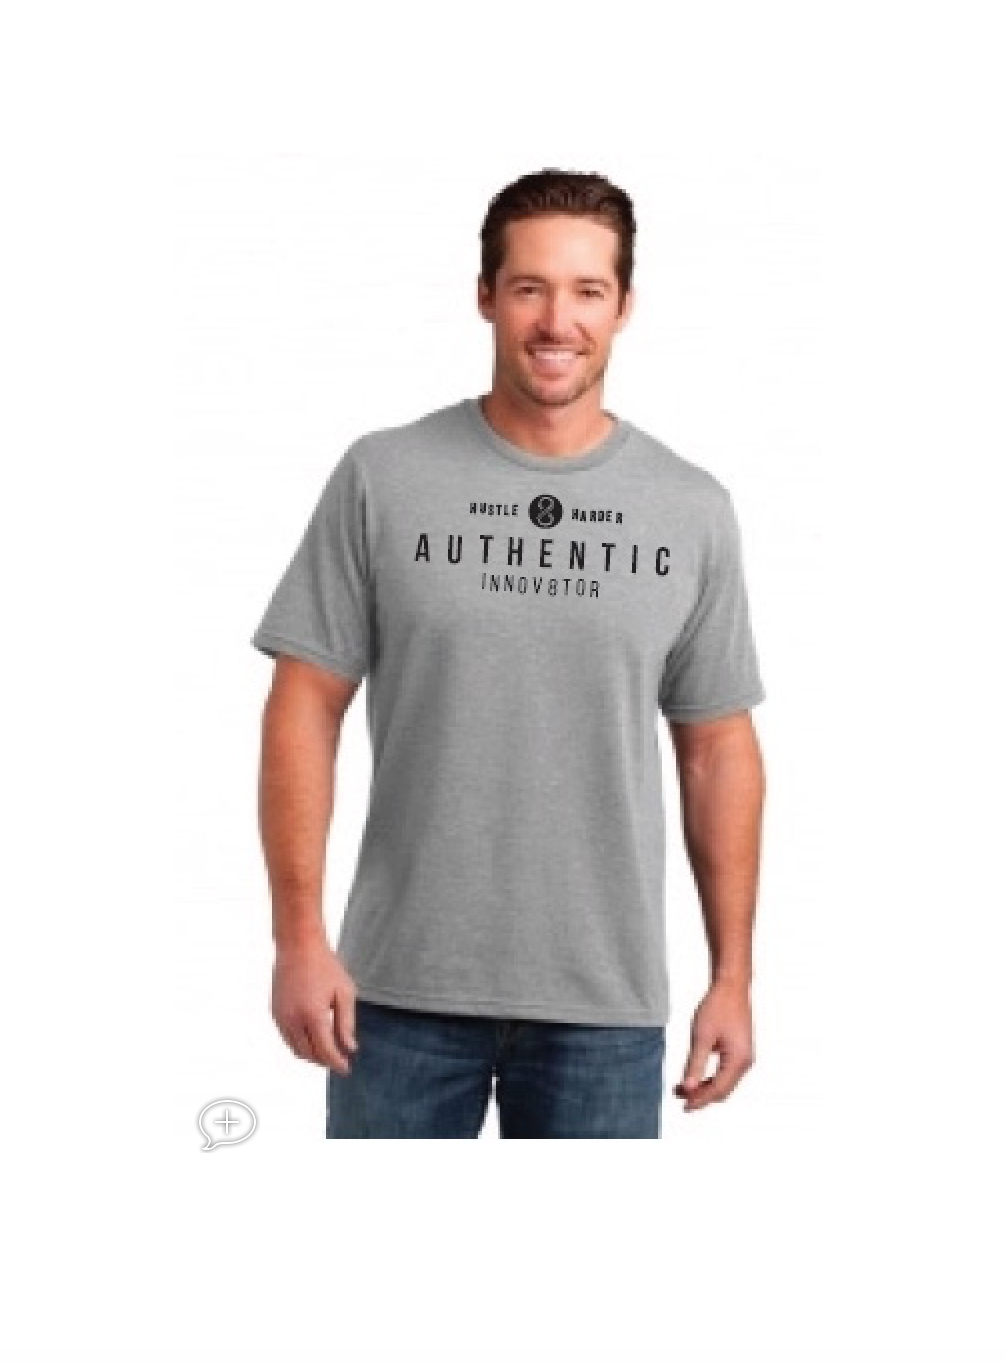 """Authentic Innov8tor"" T-Shirt"